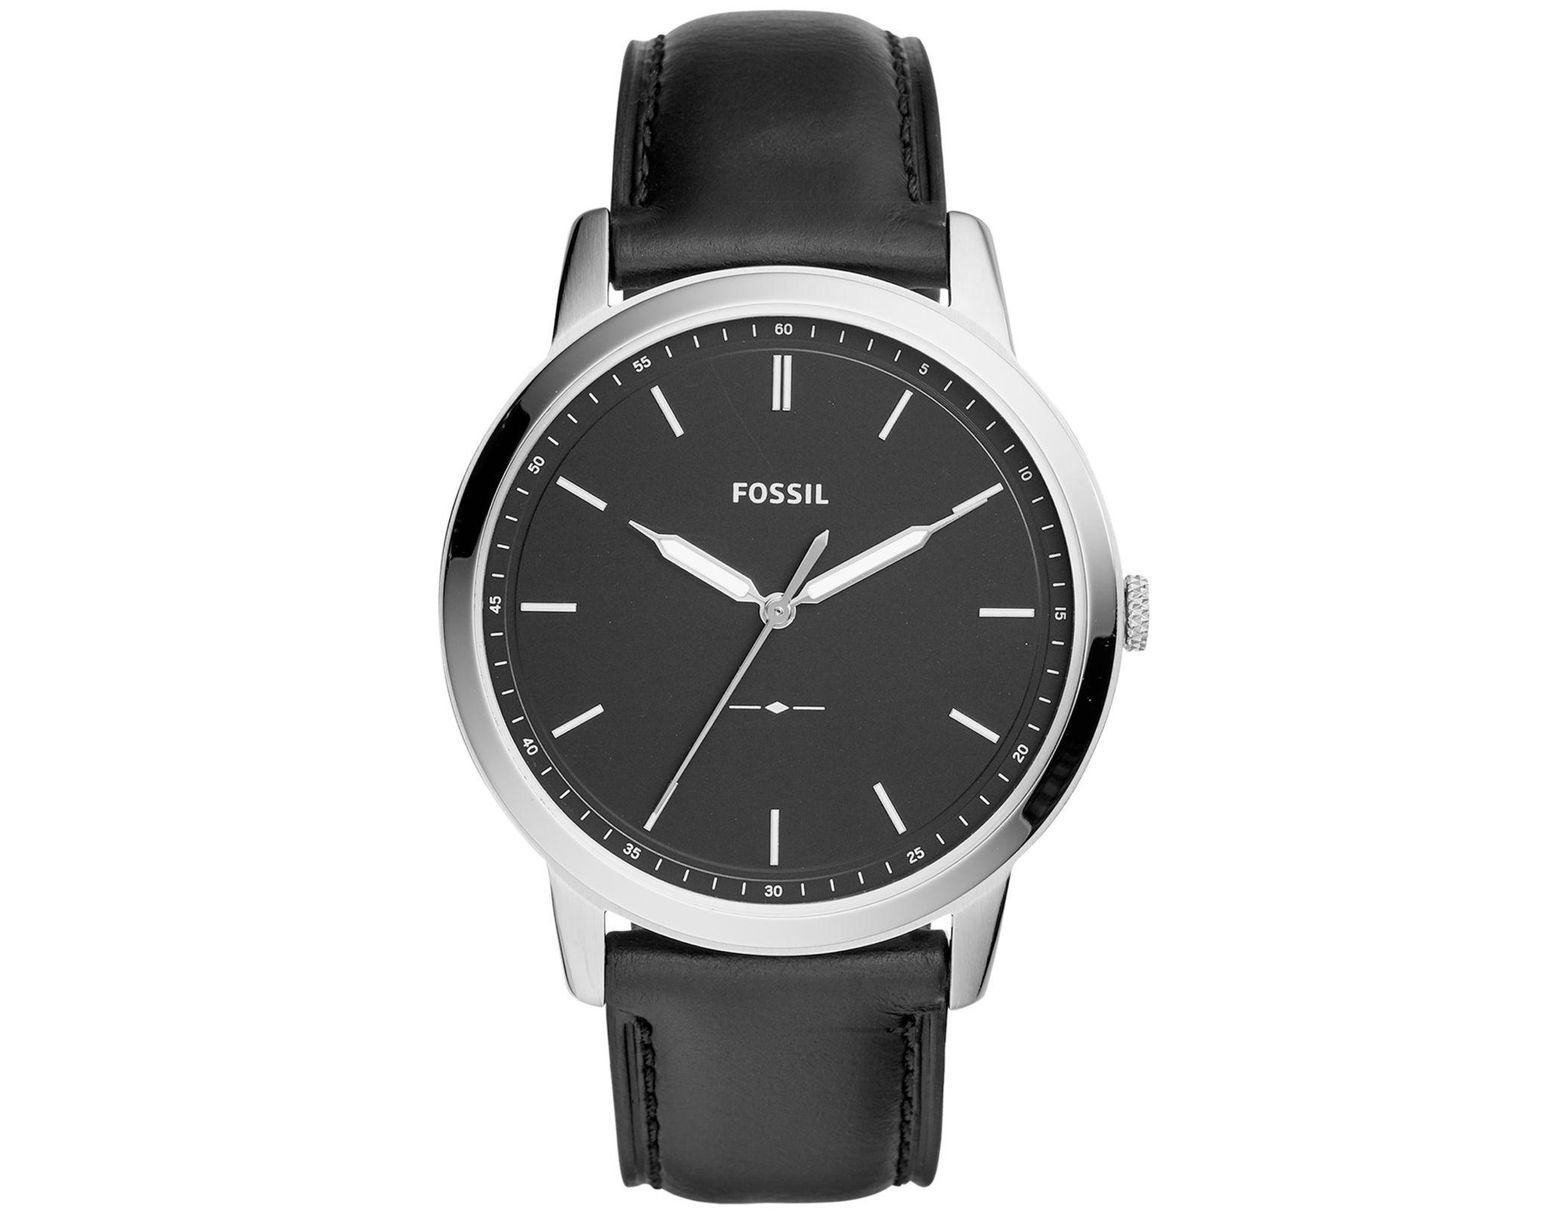 d02663d93 Fossil Men's Minimalist Black Leather Strap Watch 44mm in Black for Men -  Save 40% - Lyst